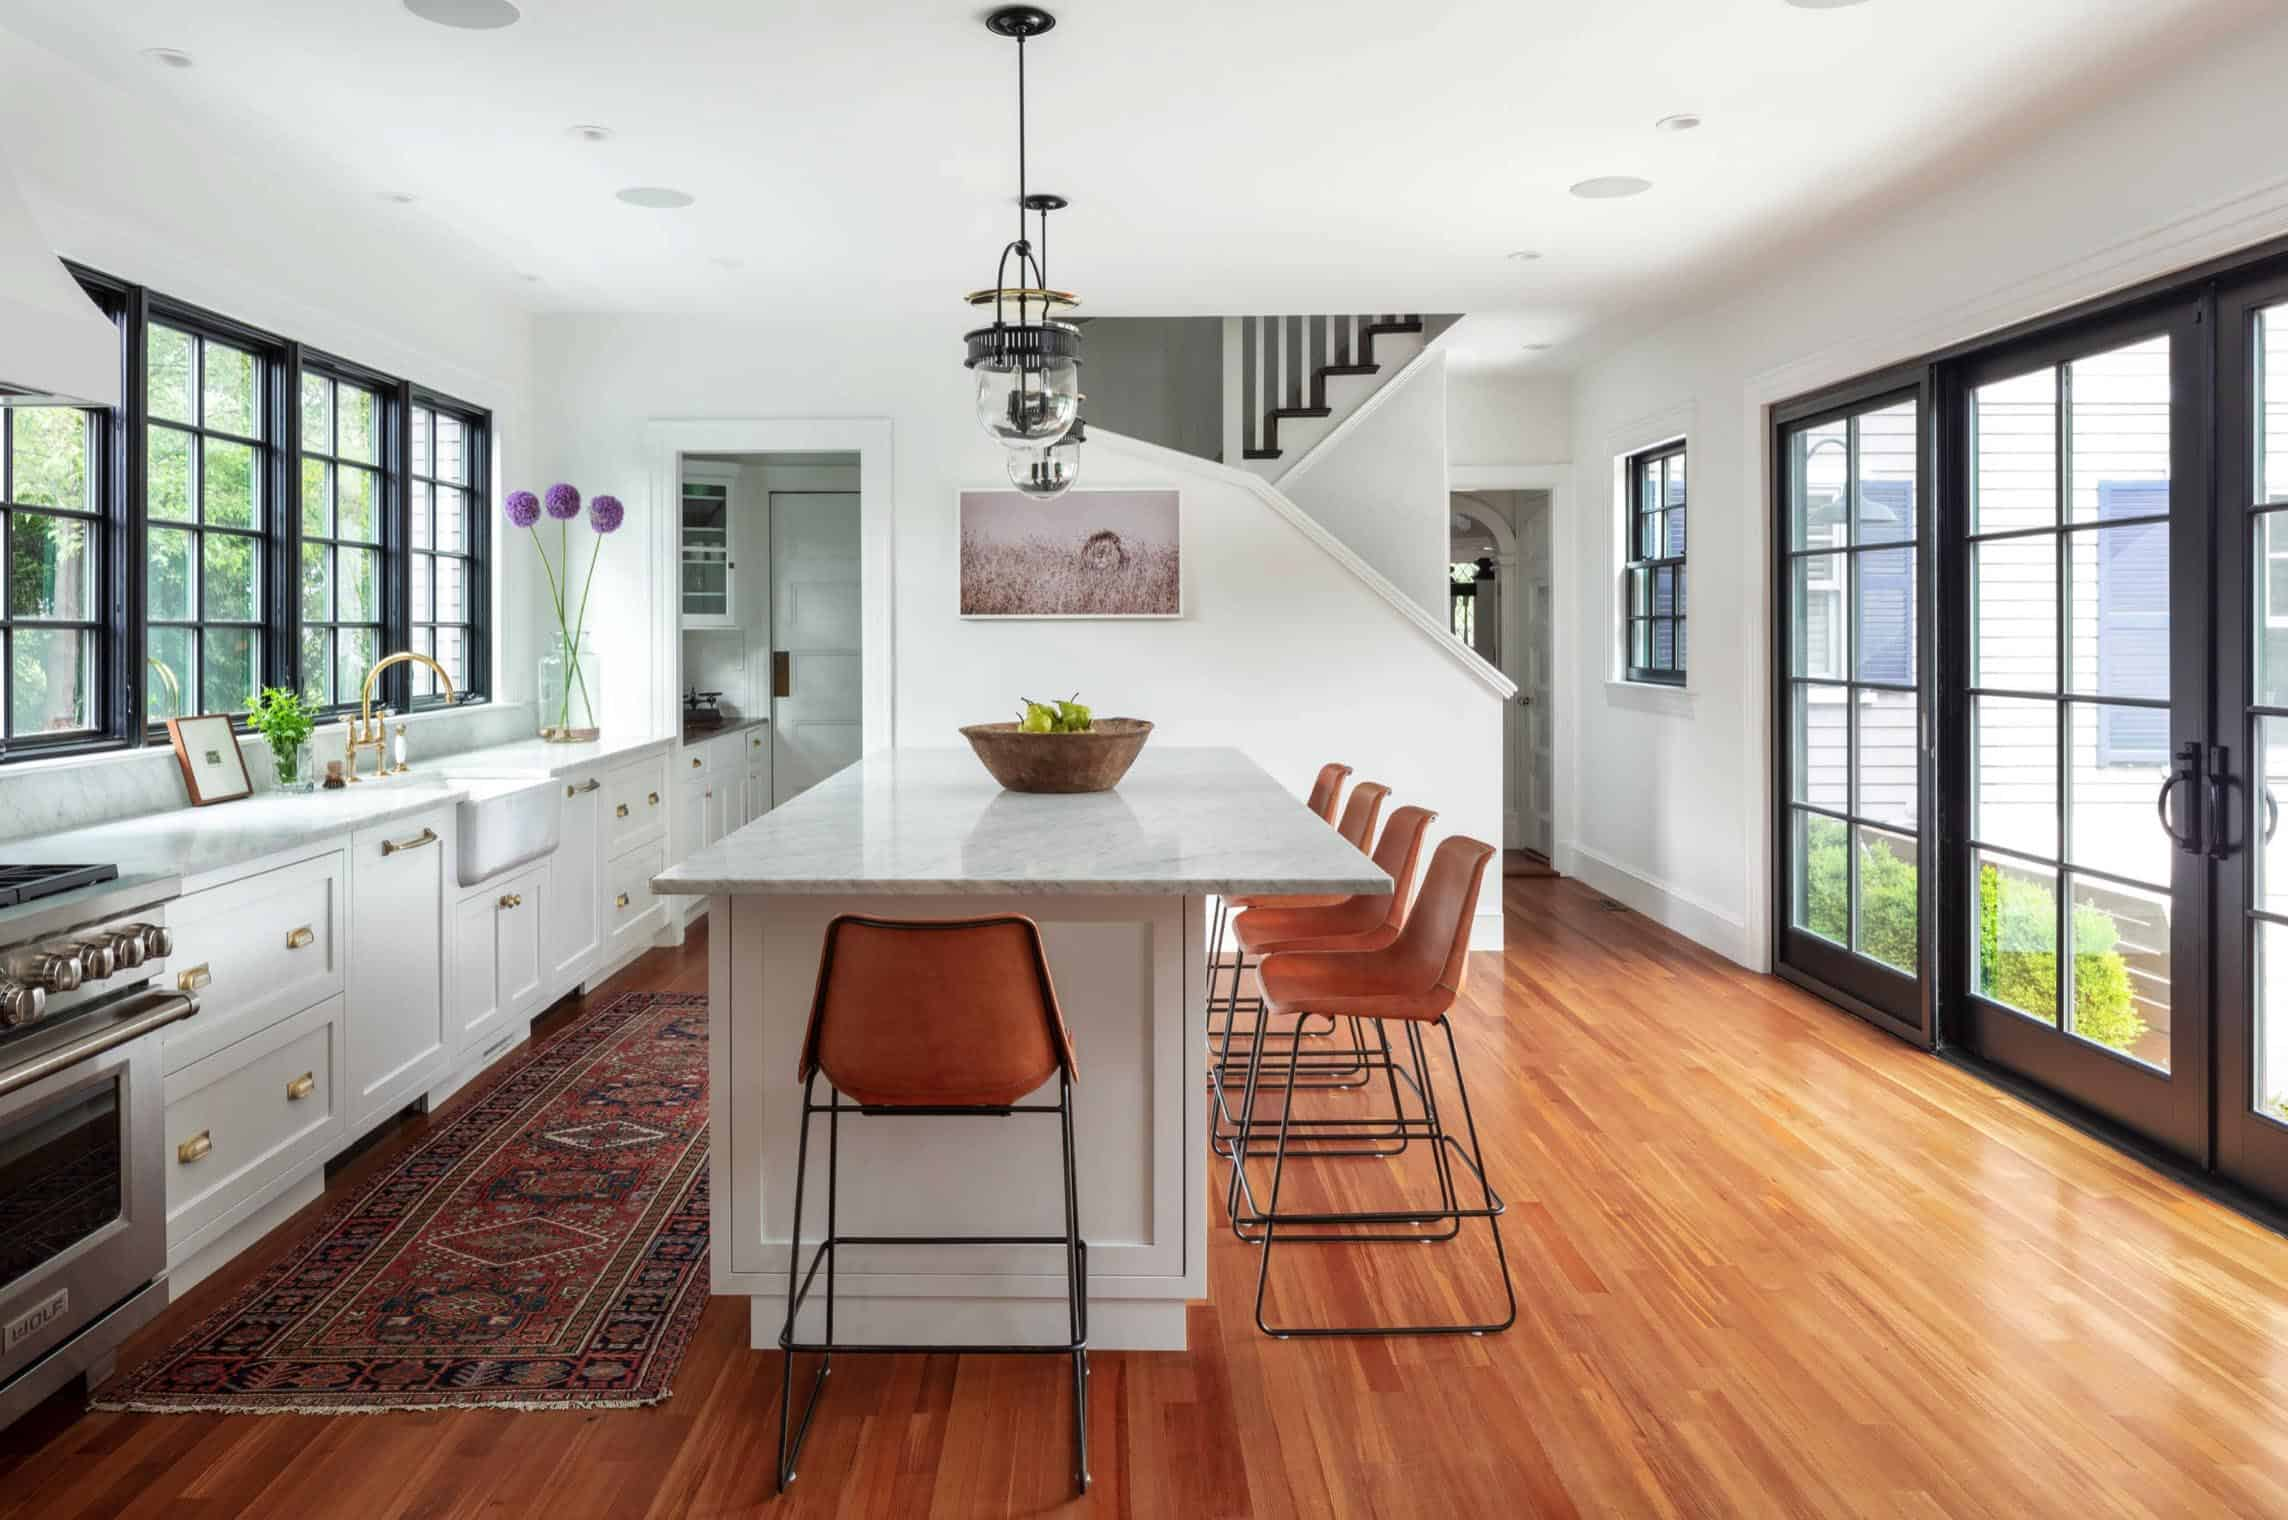 Bright And Dreamy Kitchen For A Renovated Colonial Home In New England